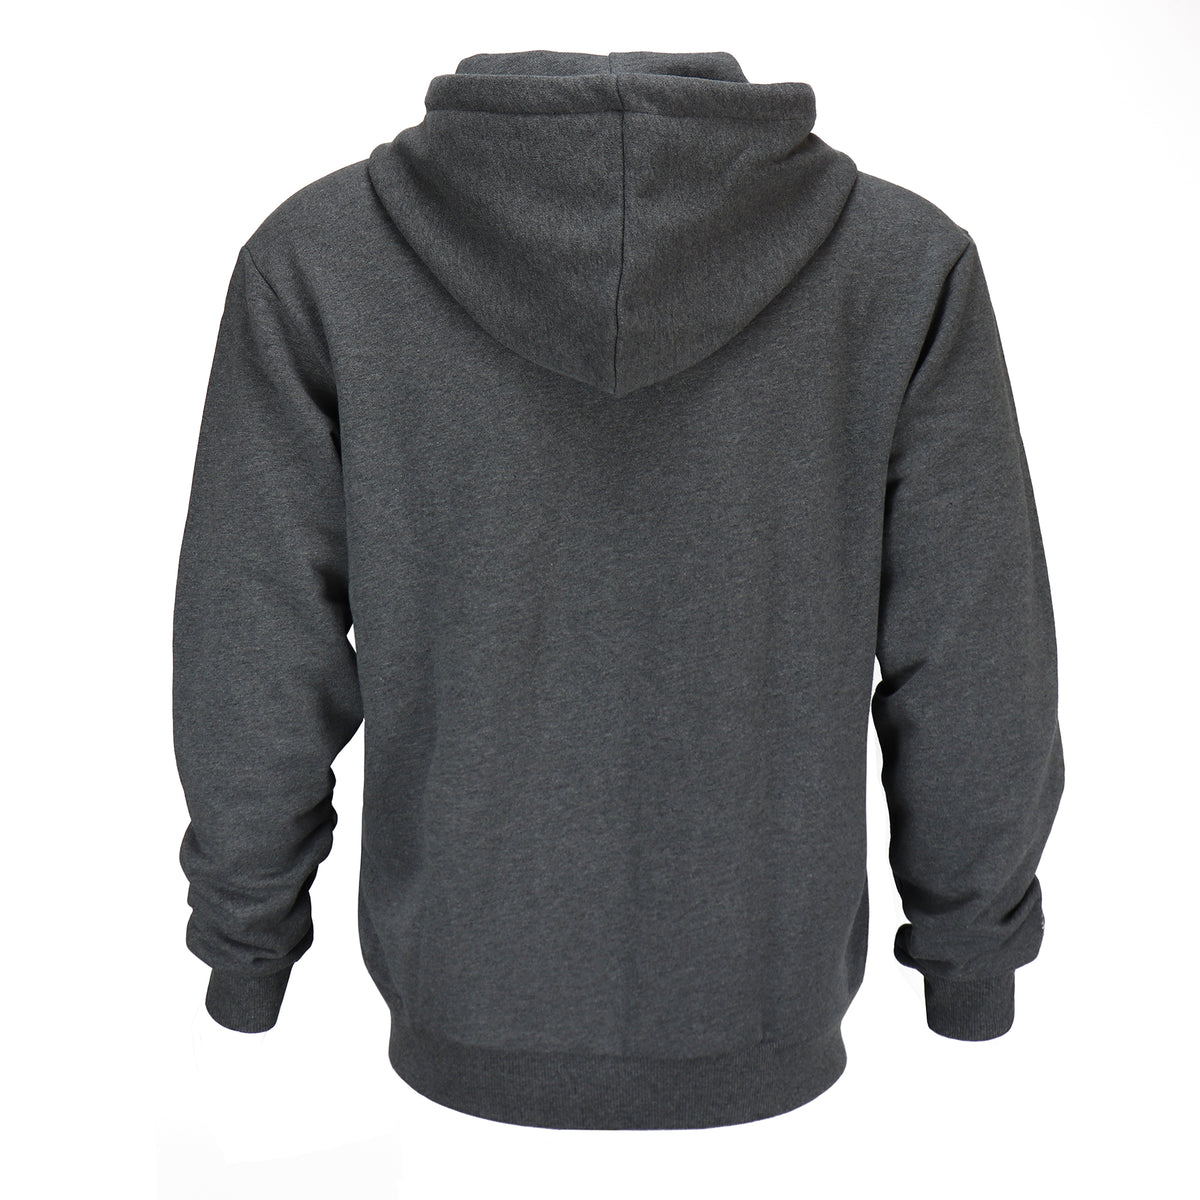 Grateful Dead Charcoal Bolt Hoodie - Section 119